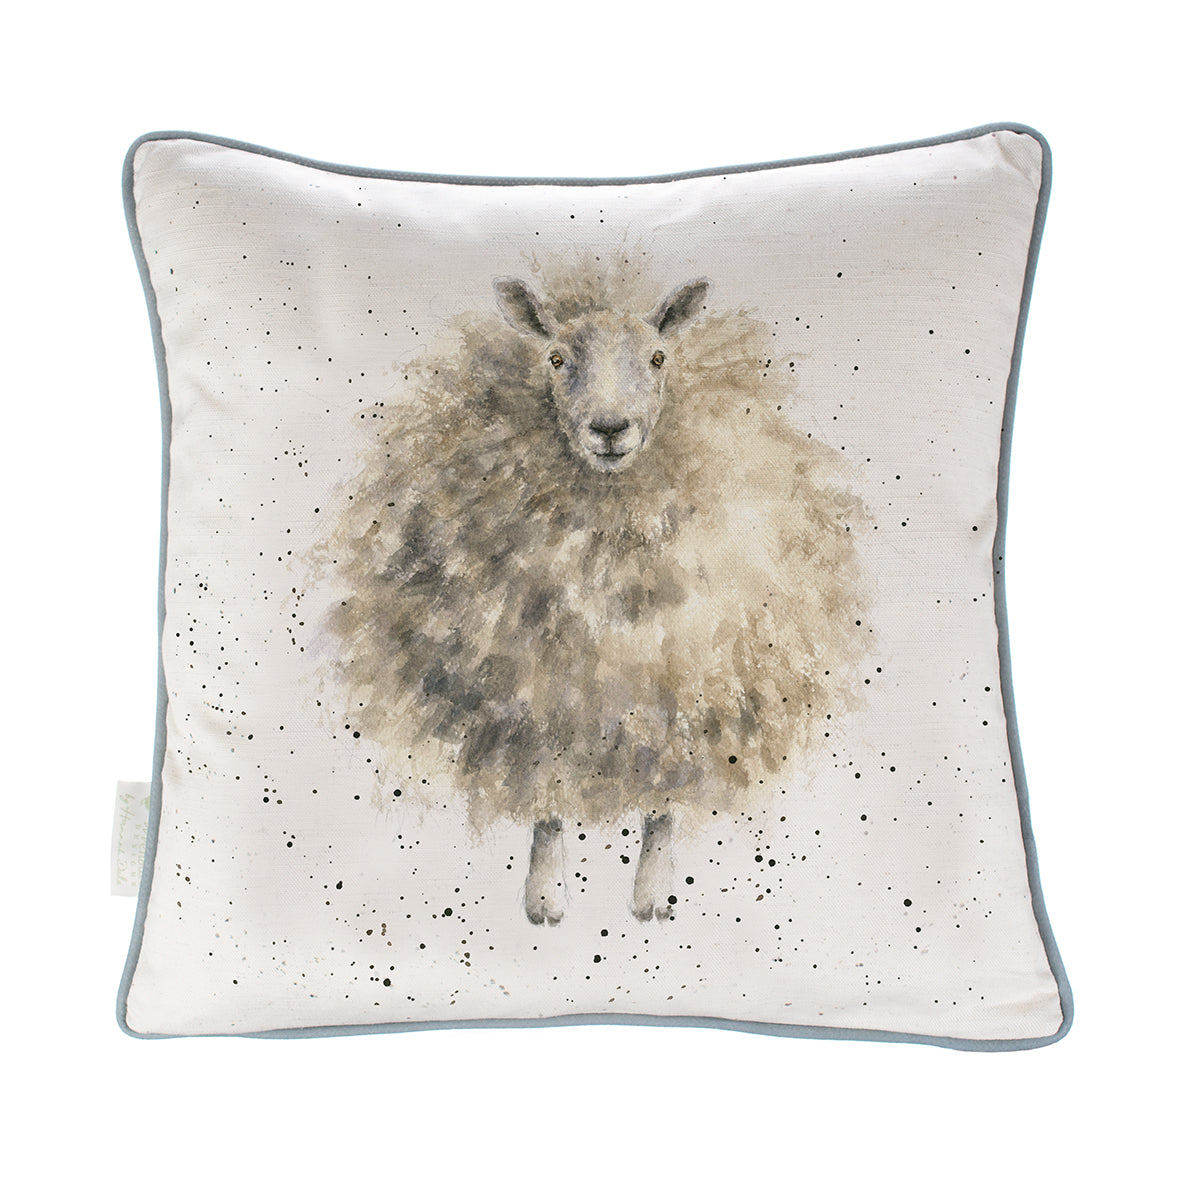 "Wrendale Designs - ""The Wooly Jumper"" Cushion"